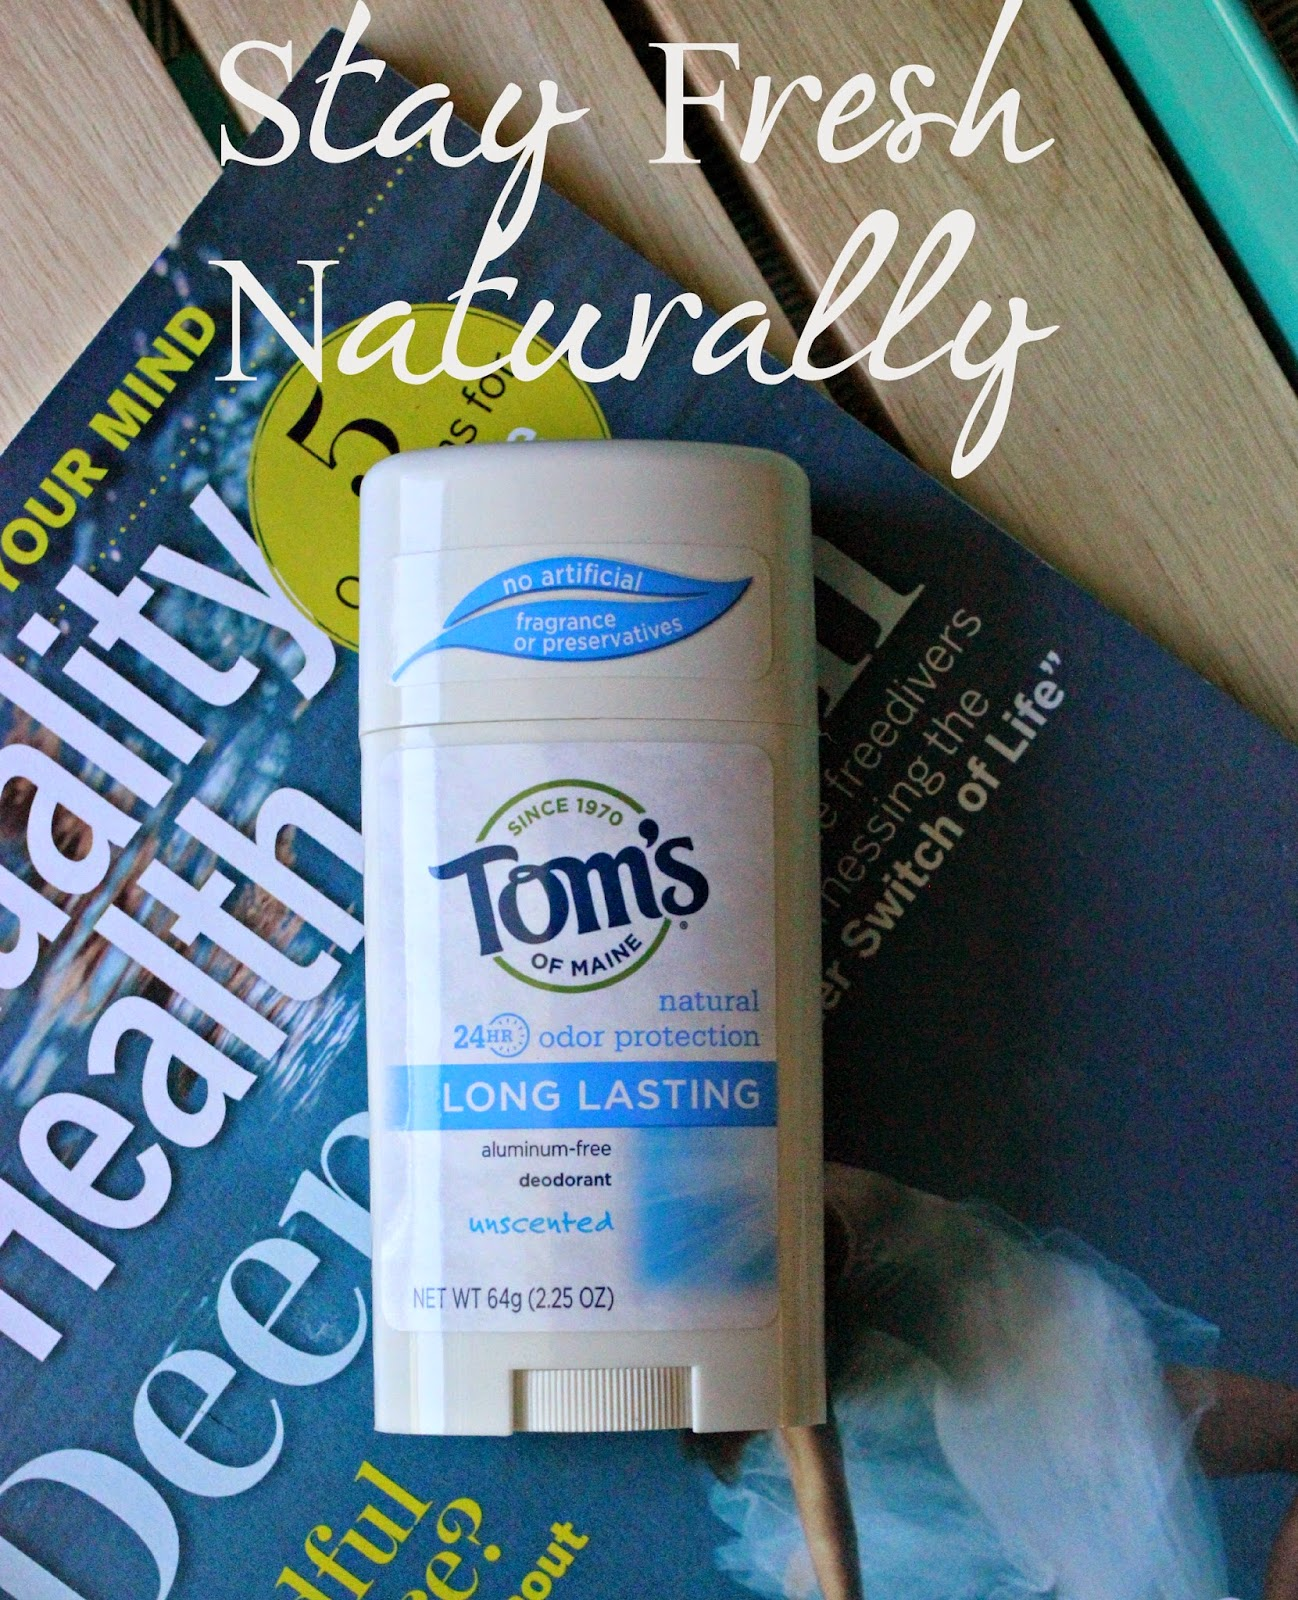 Stay Fresh Naturally with Tom's of Main #FreshNaturally #Cbias #Shop